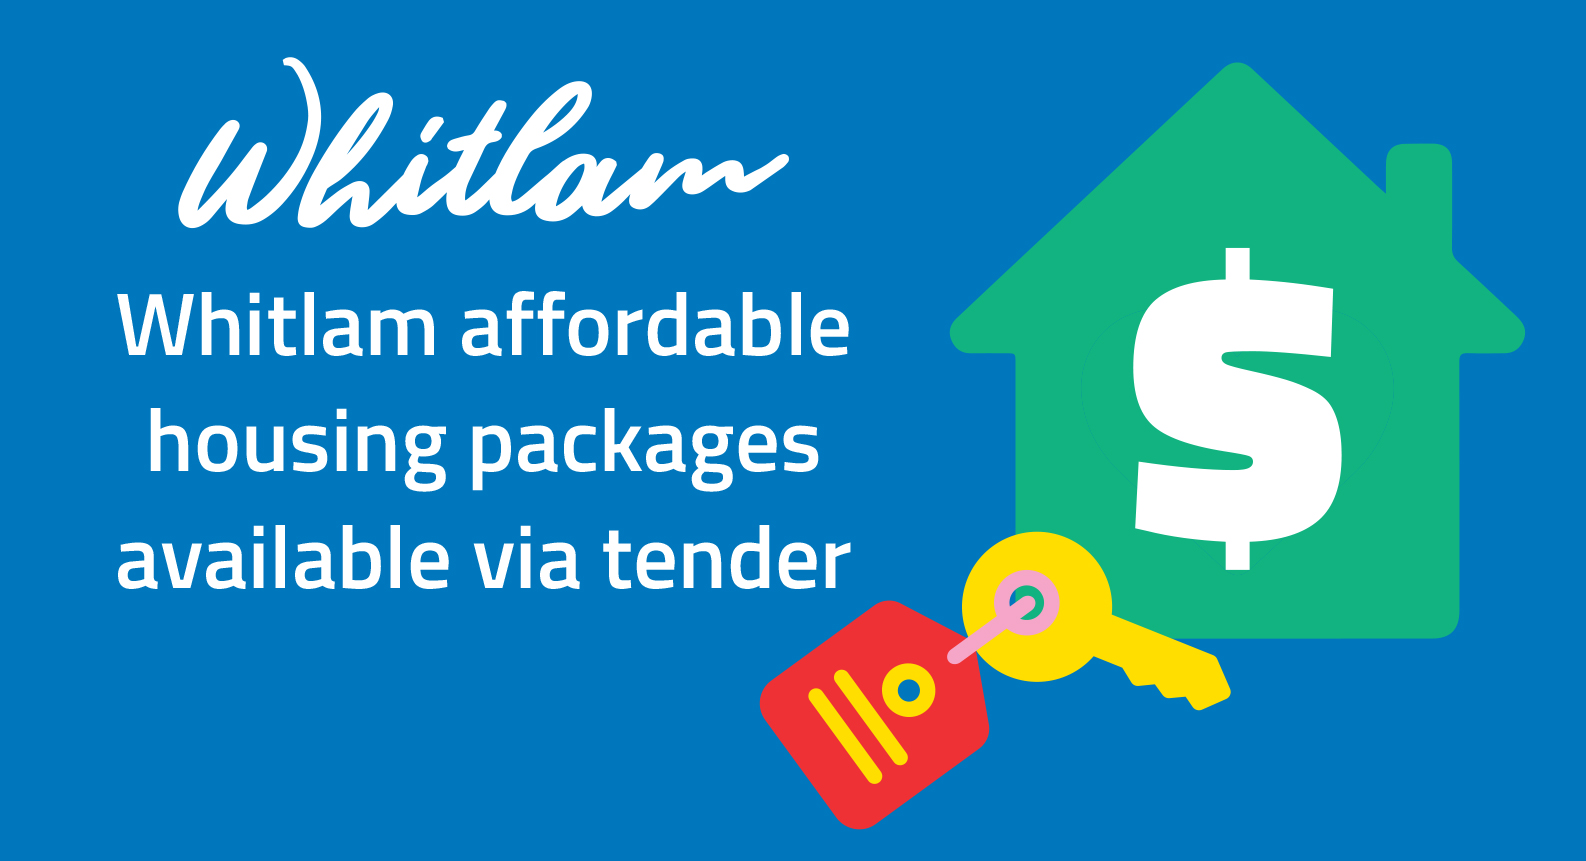 Whitlam affordable housing